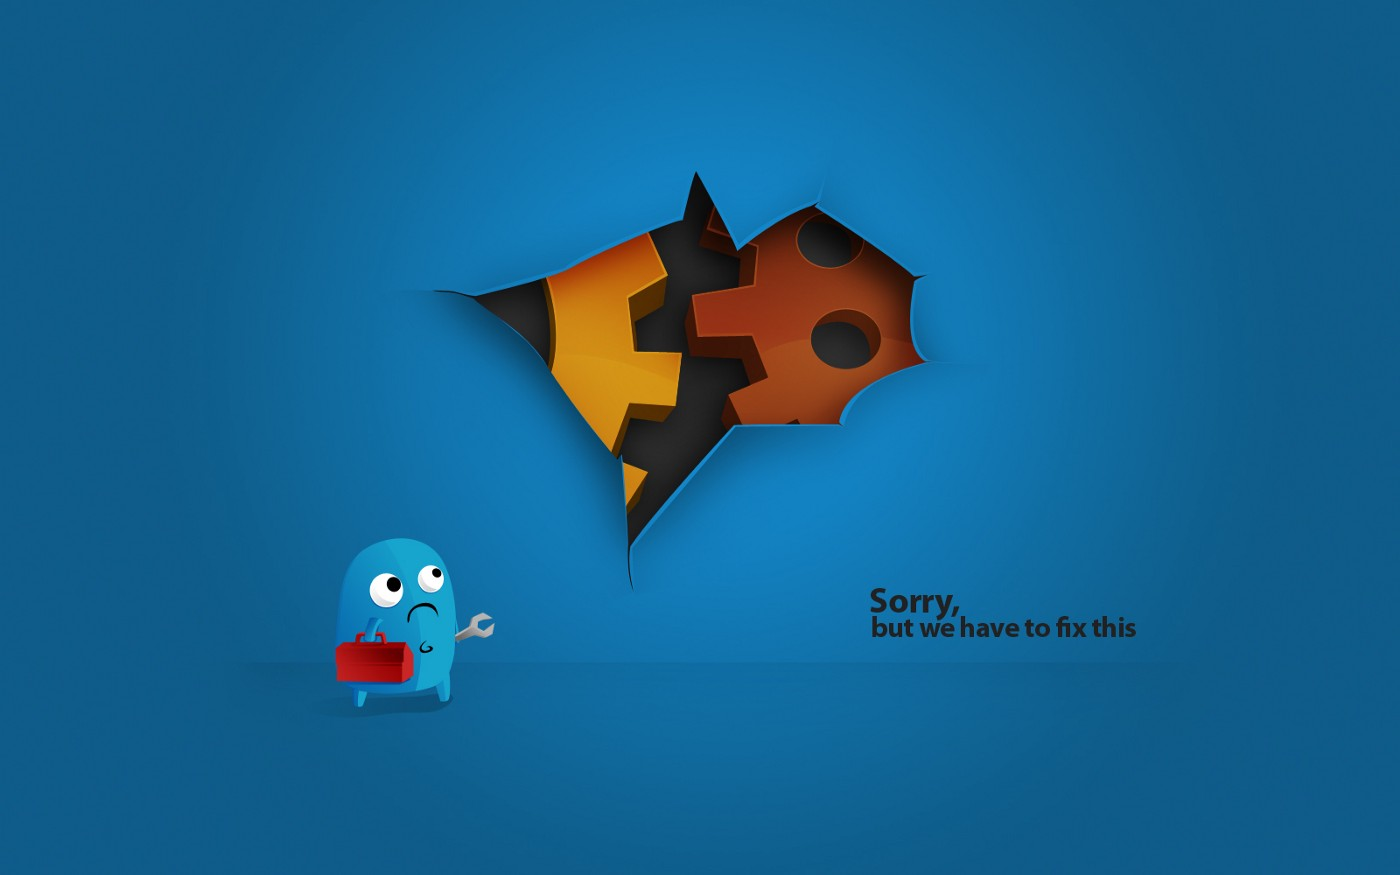 A little blue character with a repair kit looking at a hole in a website or app